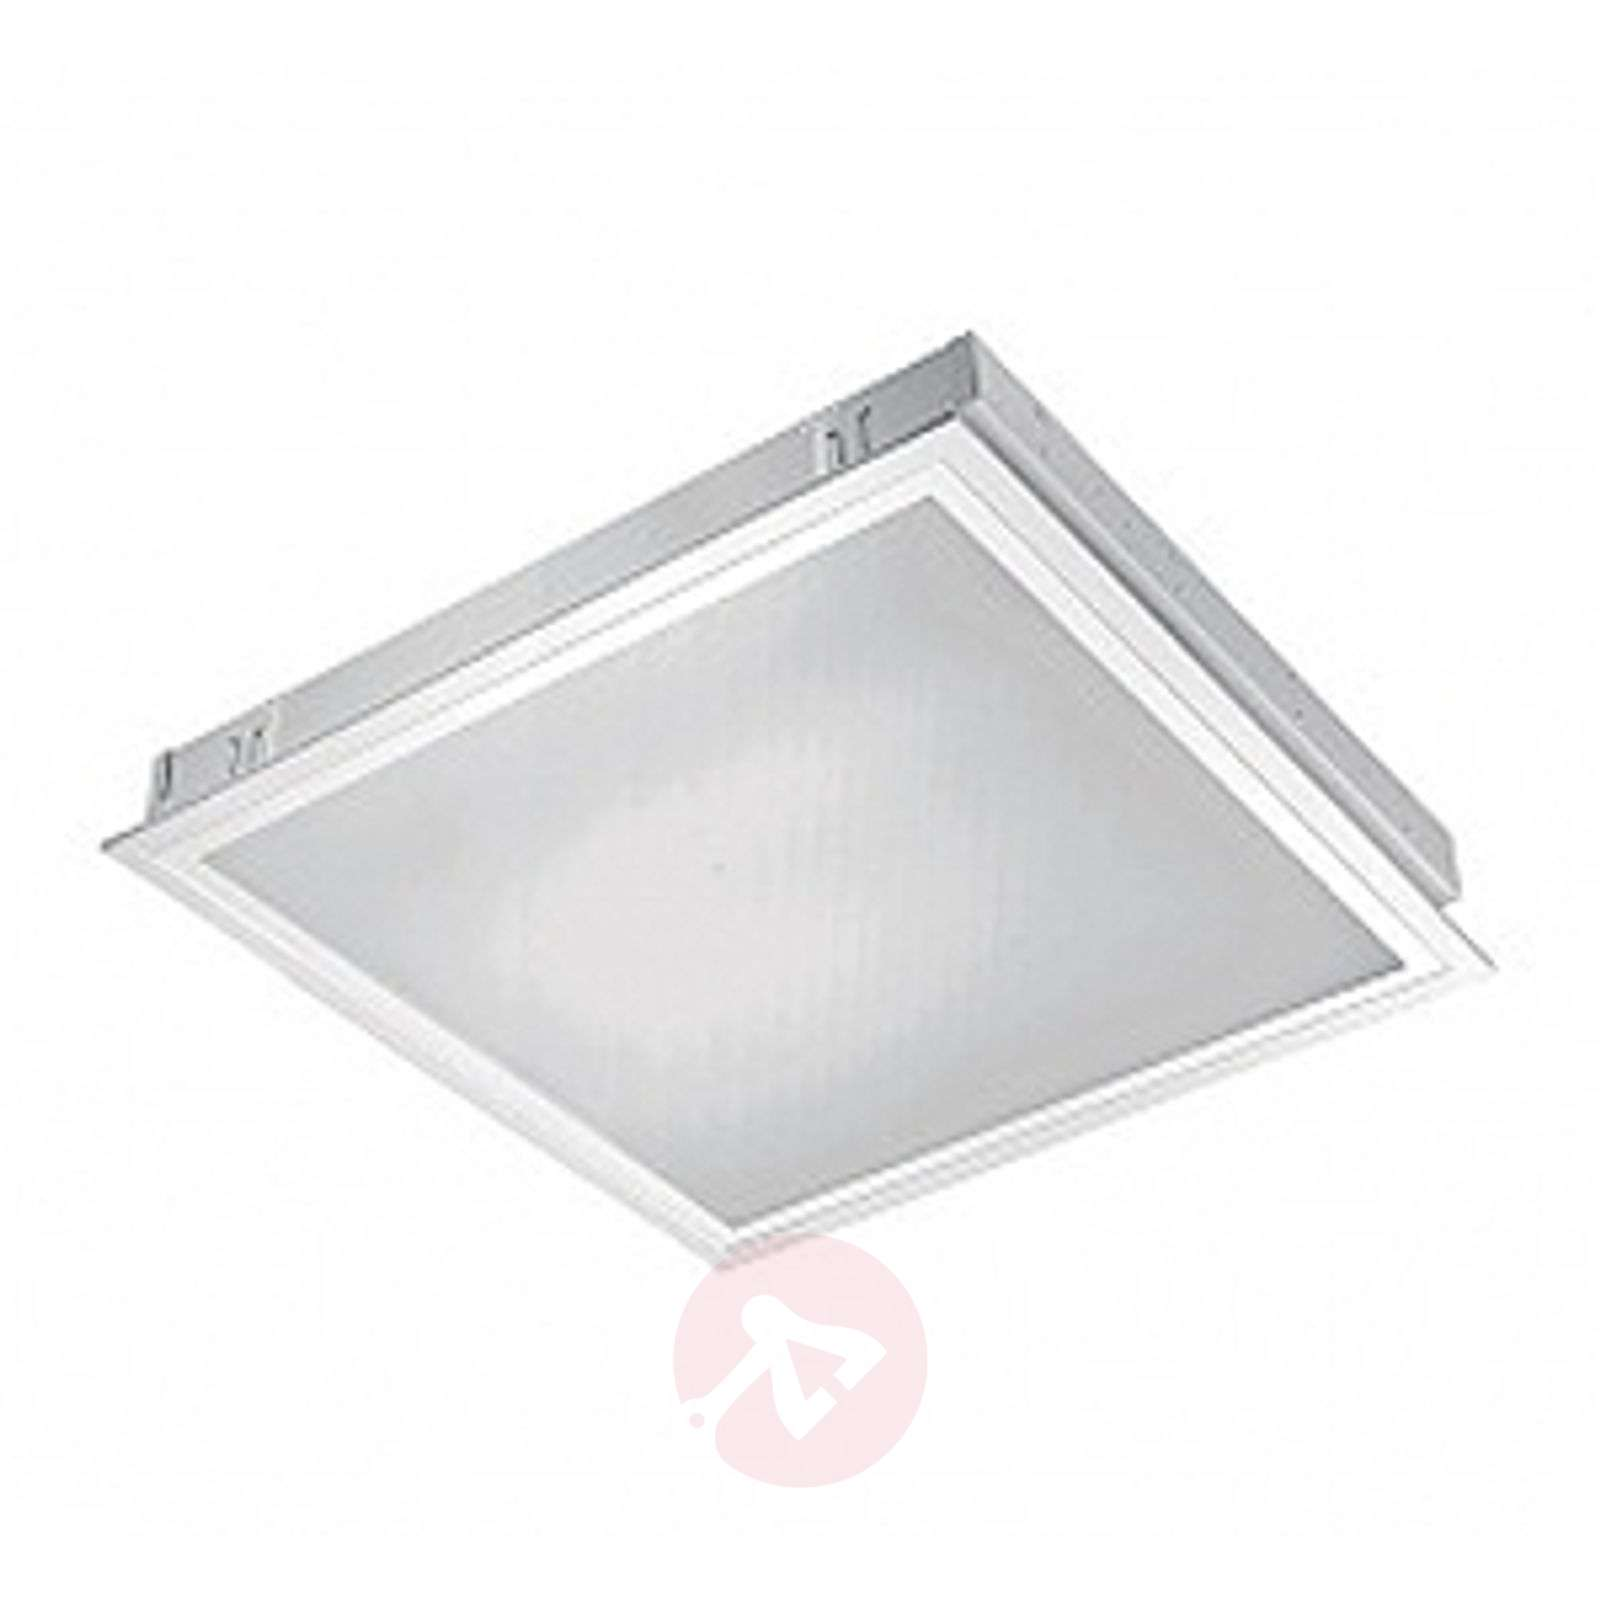 Recessed light 3010, 4 x 24 W with opal cover-1009054-01